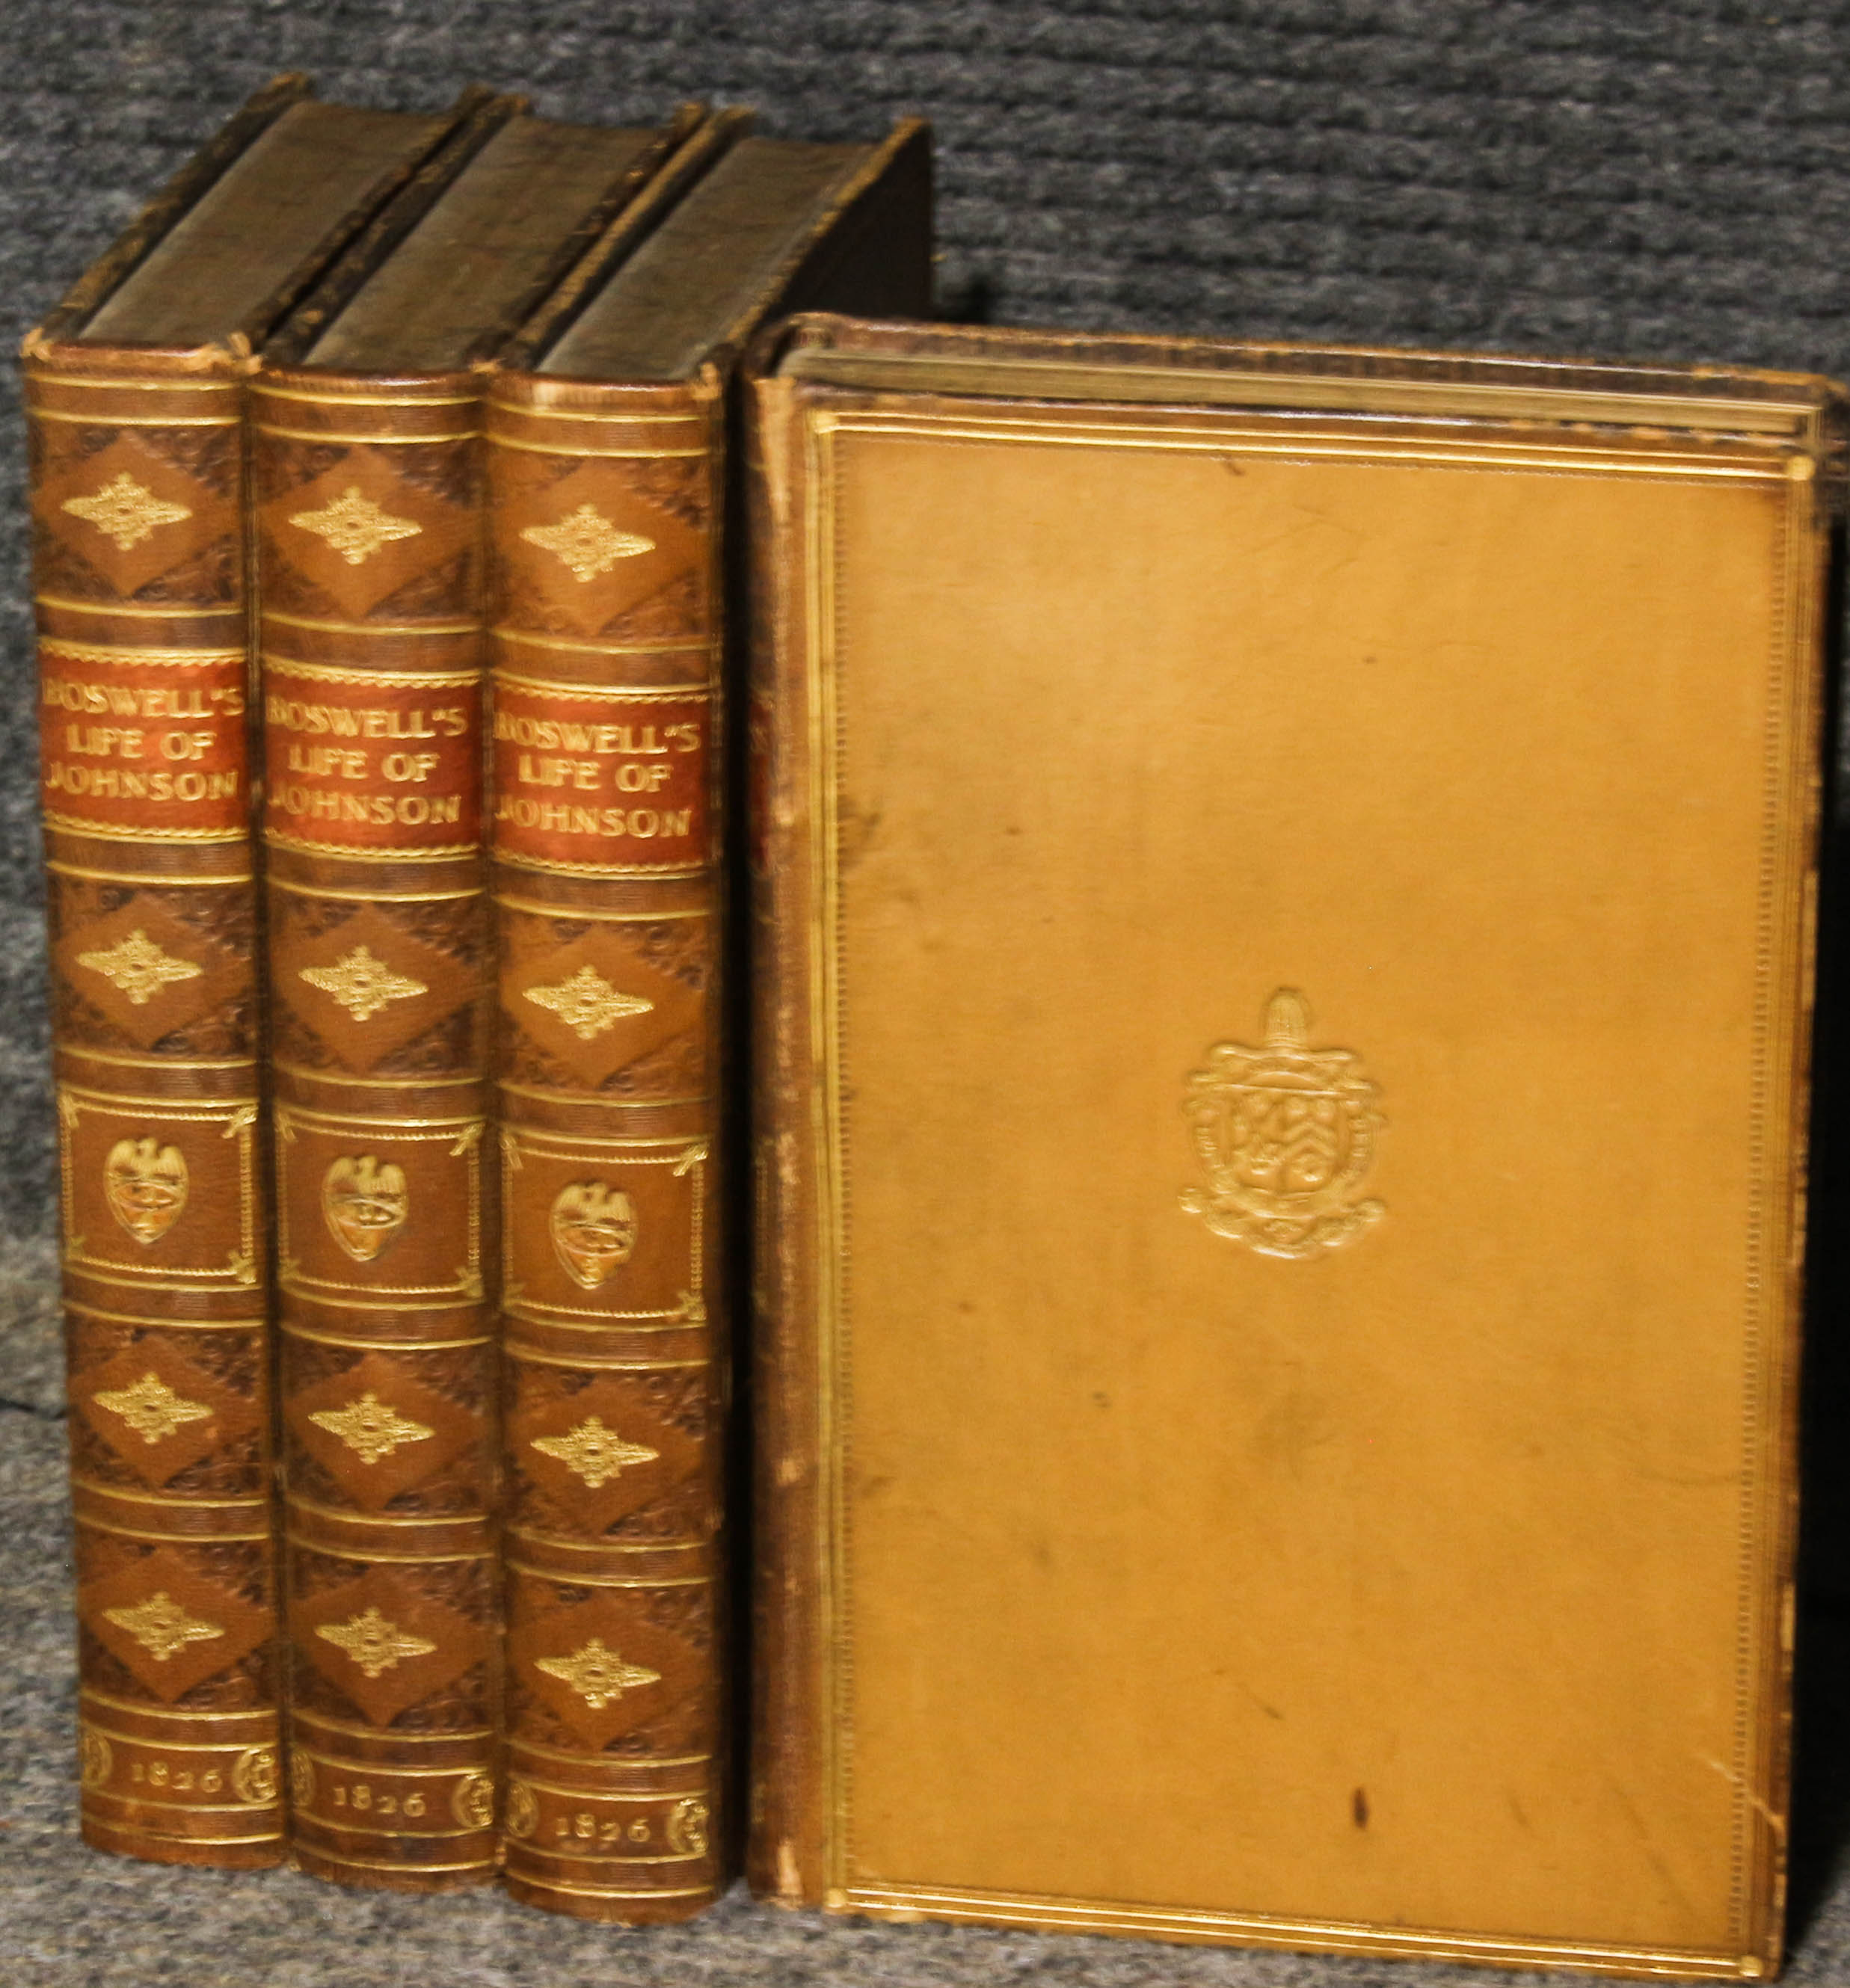 Image for The Life Of Samuel Johnson. 4 Vols. Complete Biography